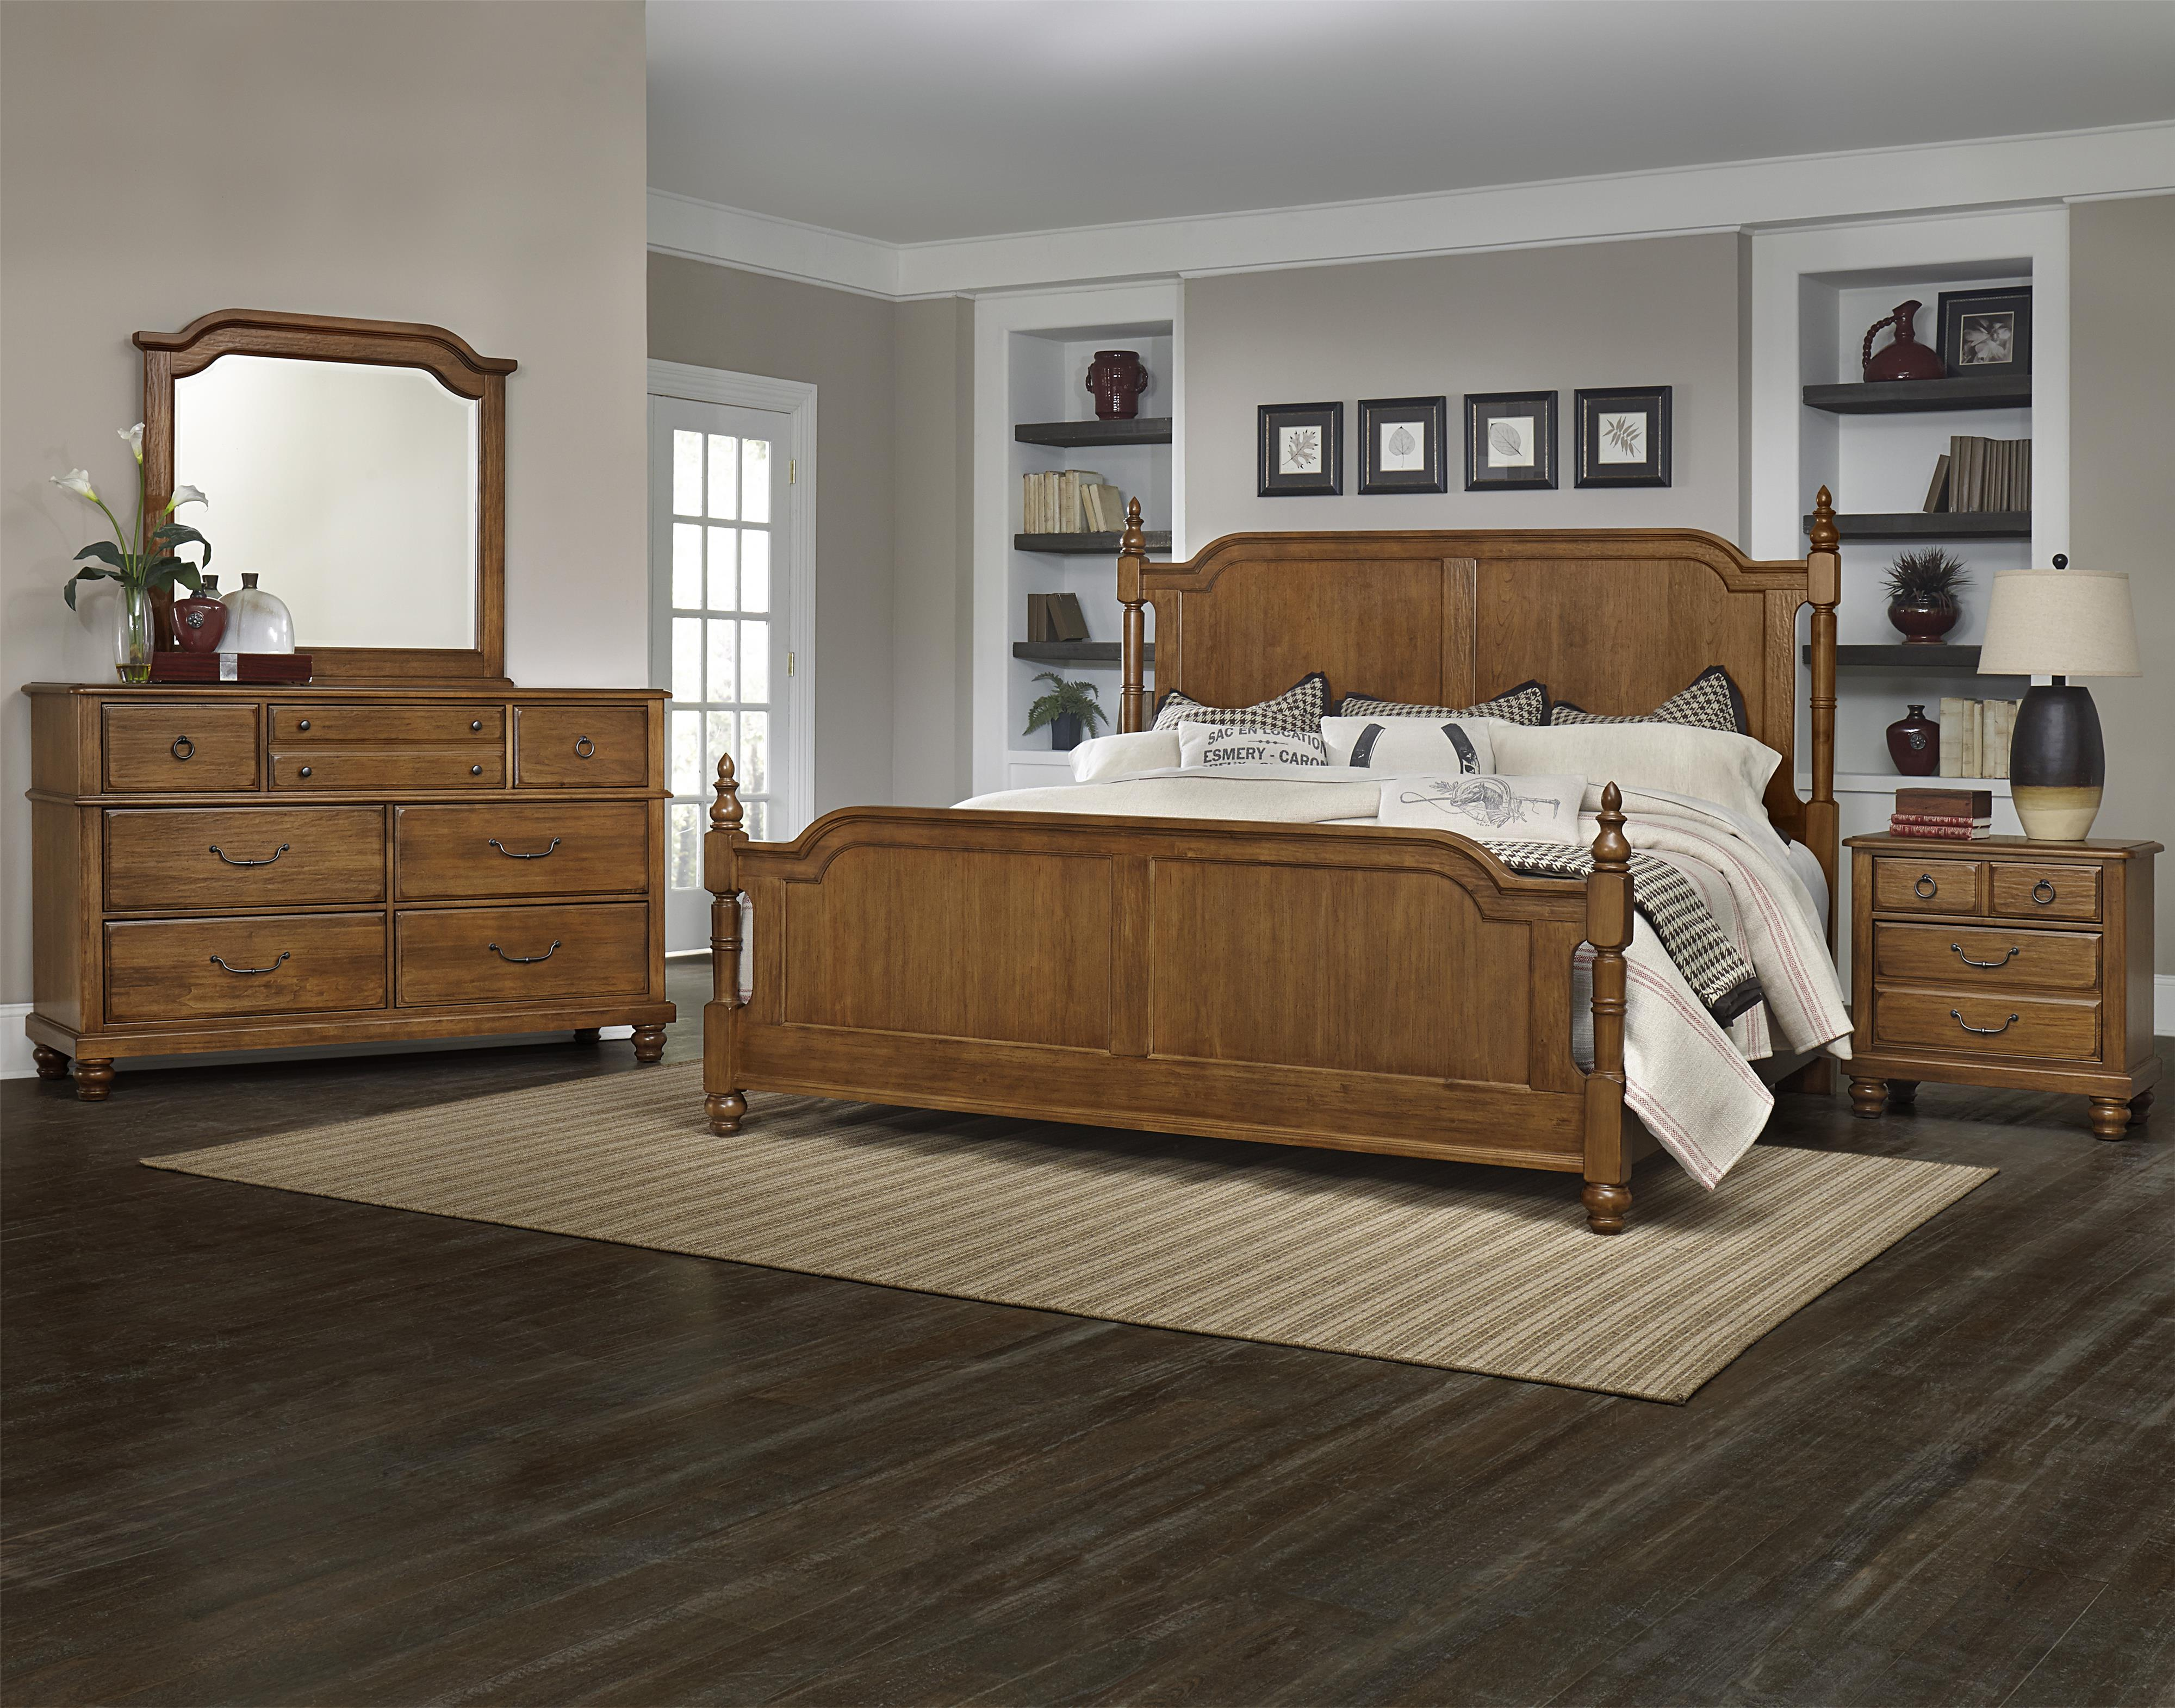 vaughan bassett arrendelle queen bedroom group dunk bright furniture bedroom group. Black Bedroom Furniture Sets. Home Design Ideas